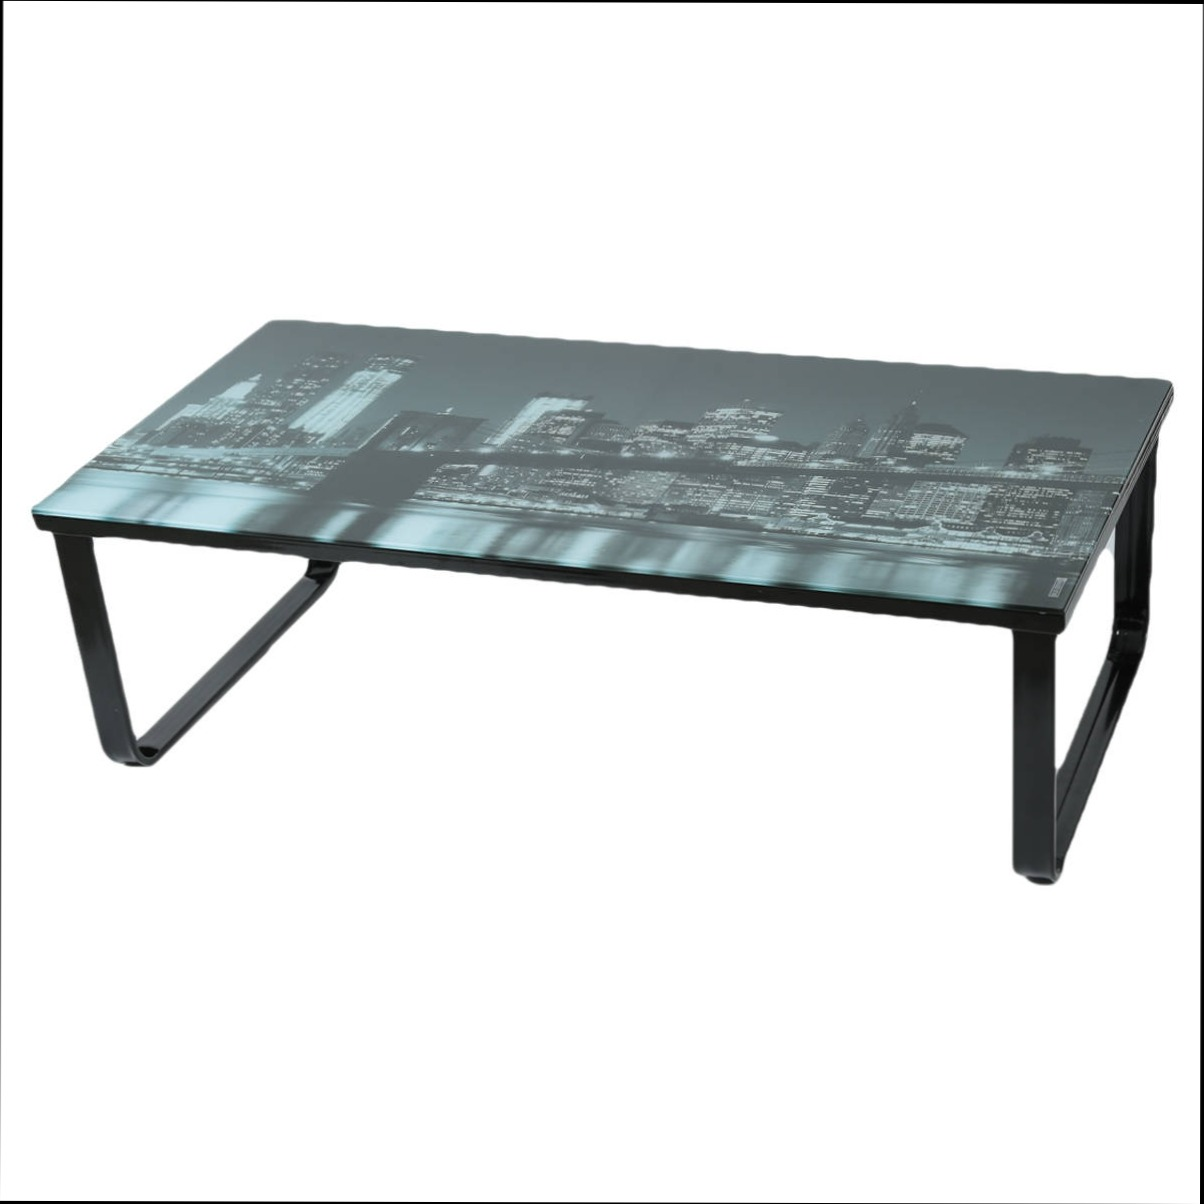 table basse en verre tati mobilier design d coration d 39 int rieur. Black Bedroom Furniture Sets. Home Design Ideas